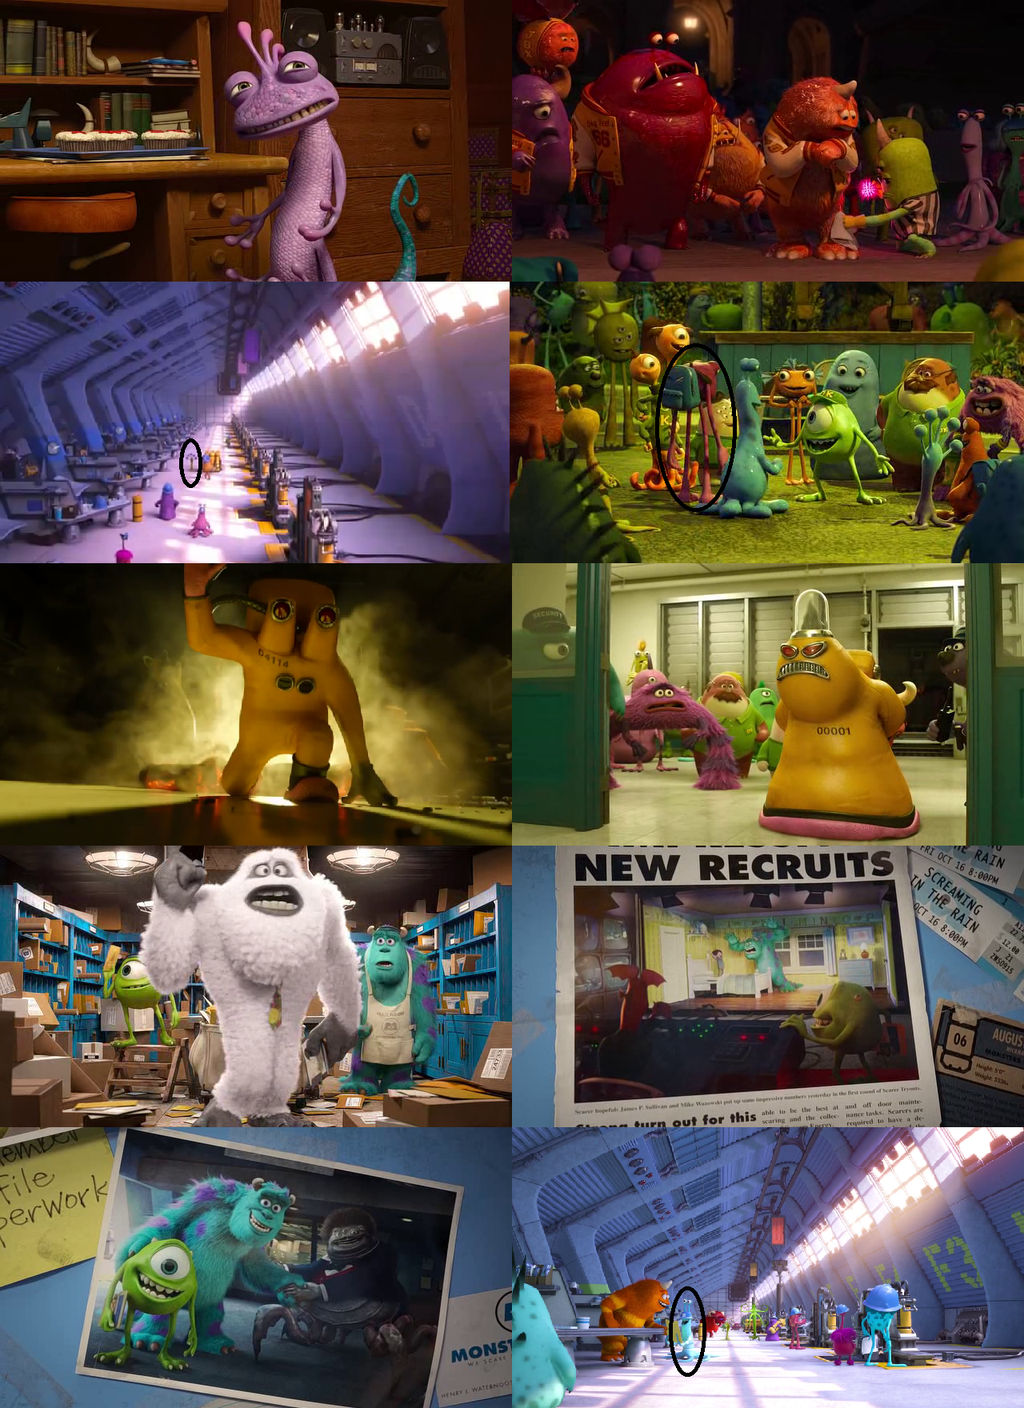 Monsters Inc Characters In Monsters University By Dlee1293847 On Deviantart